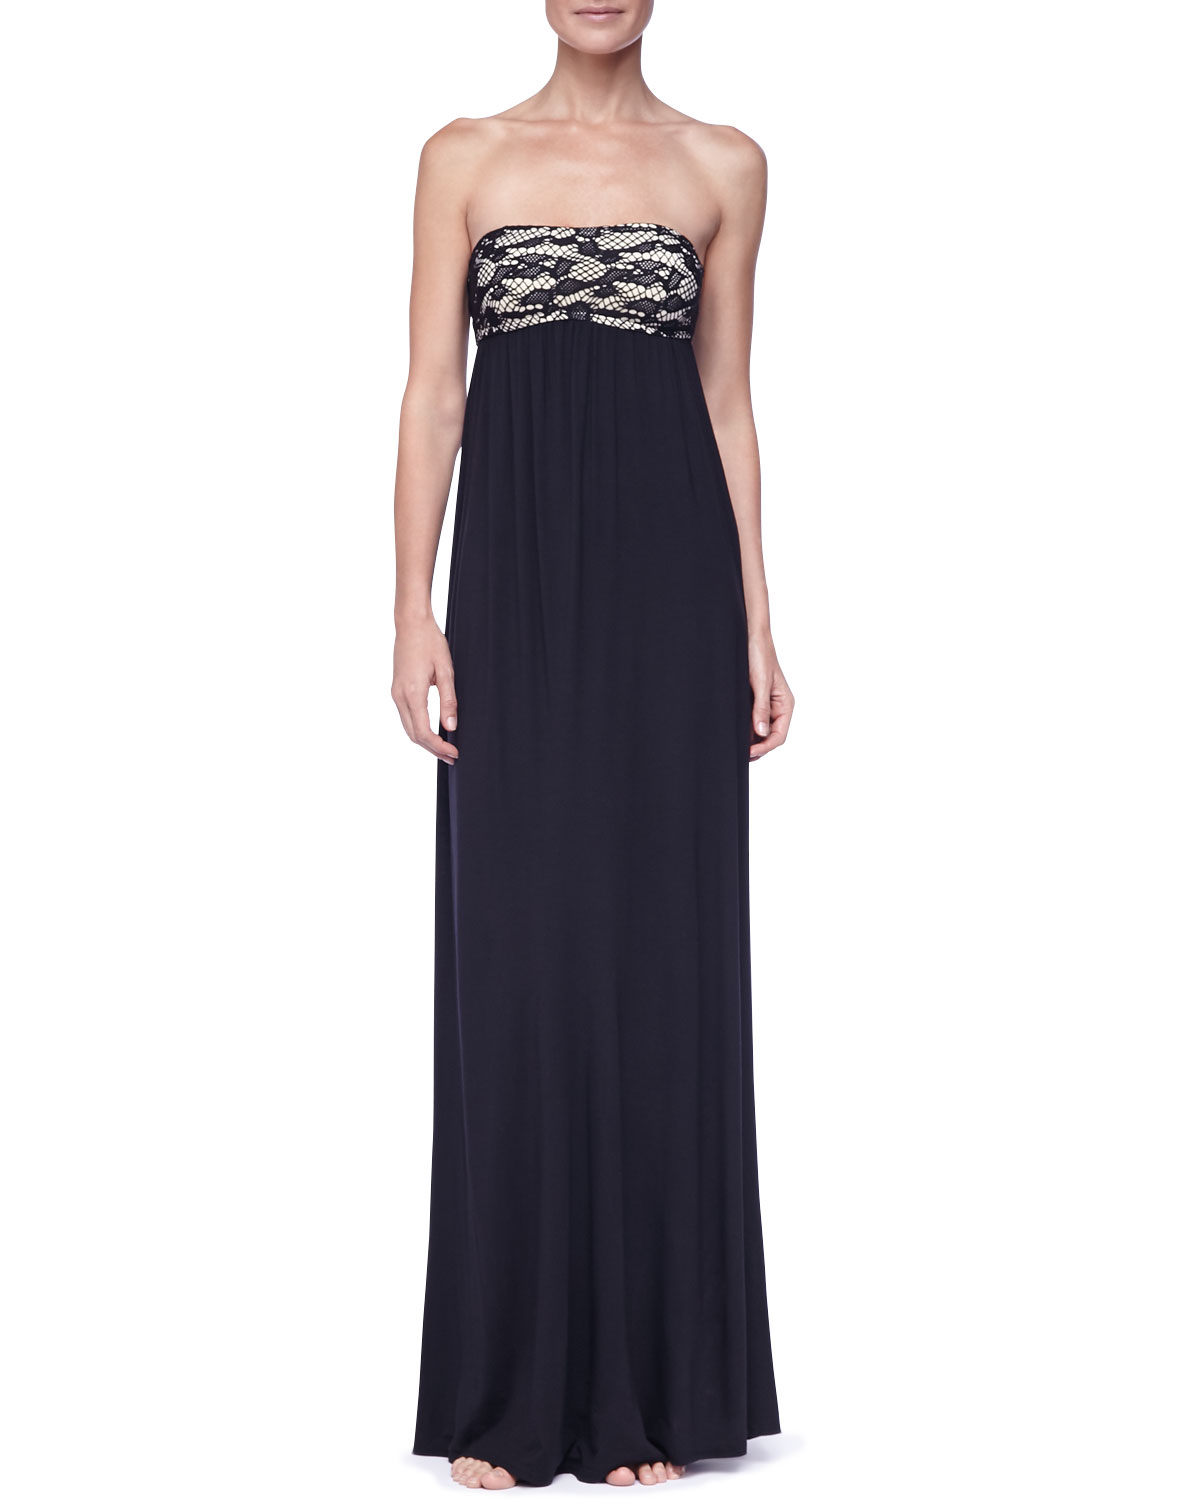 Womens Strapless Empire Waist Maxi Dress   Luxe by Lisa Vogel   Onyx (LARGE)